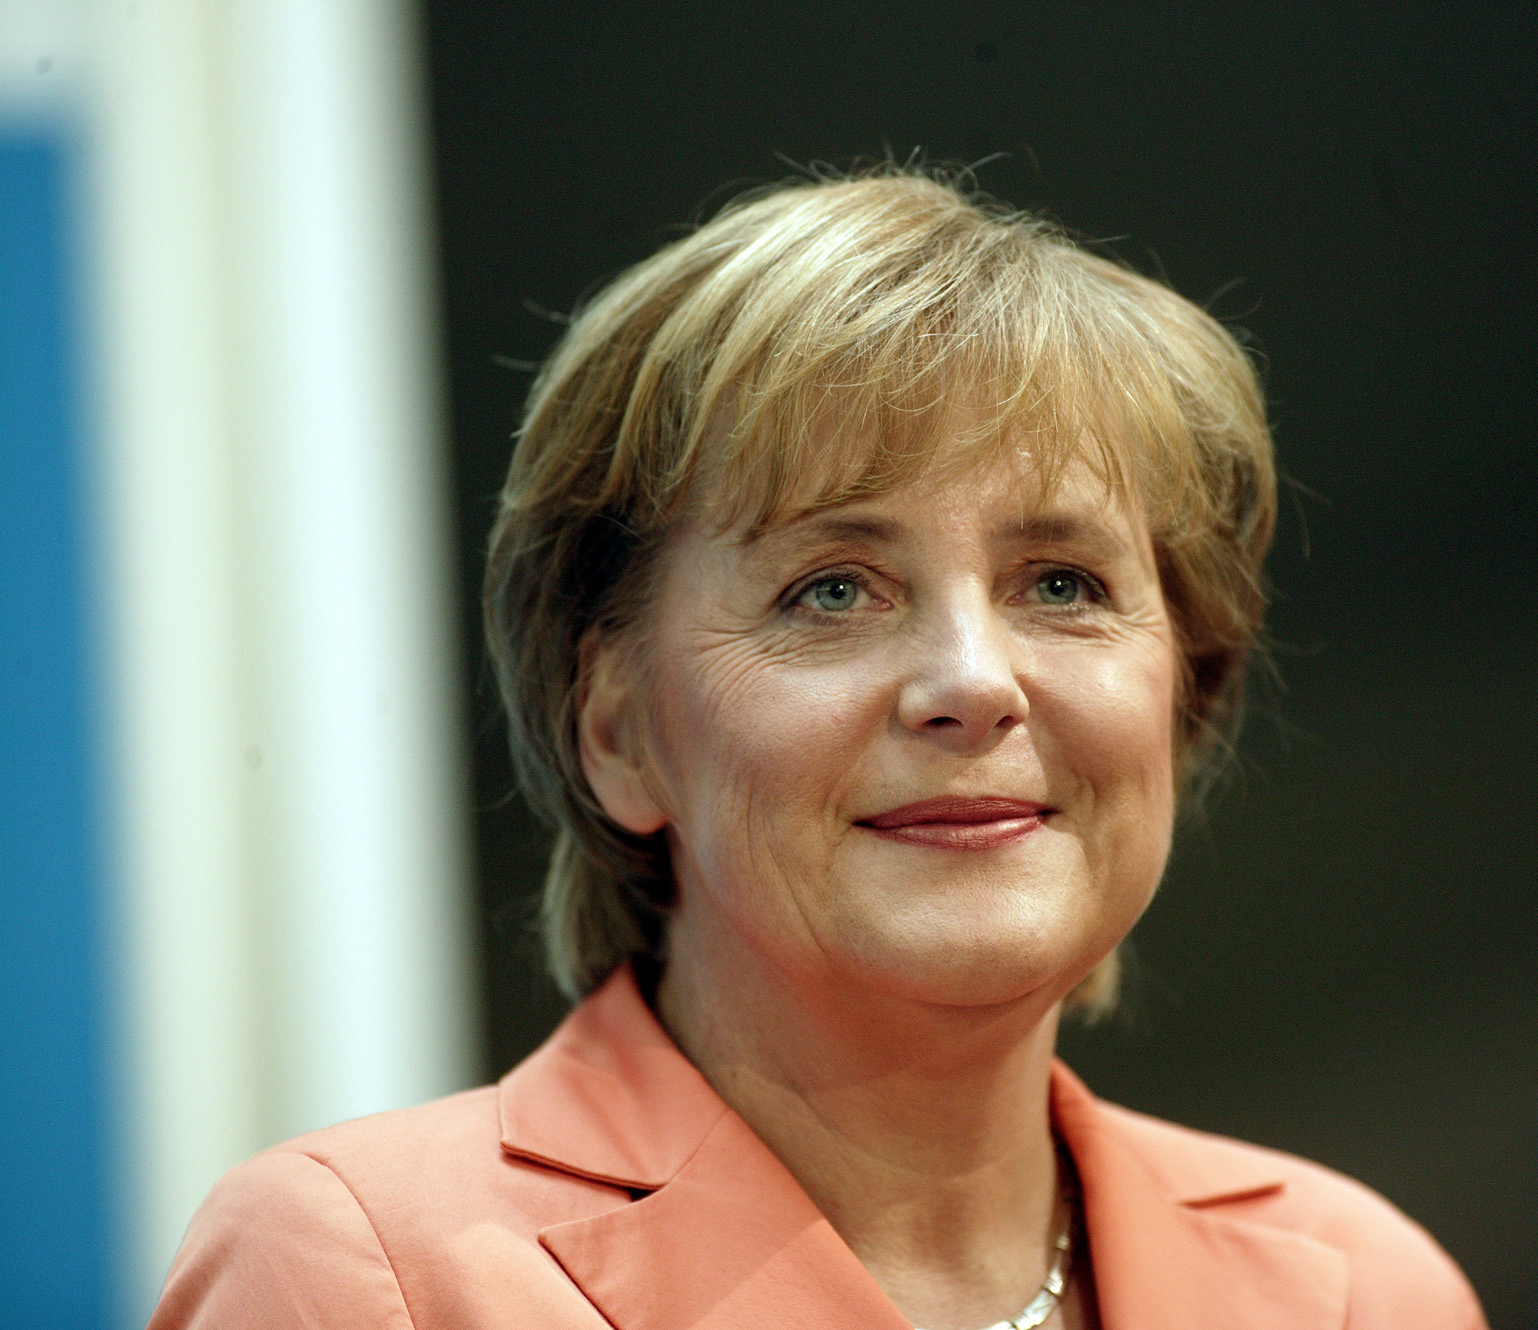 Merkel gears up for election shaped by economic crisis